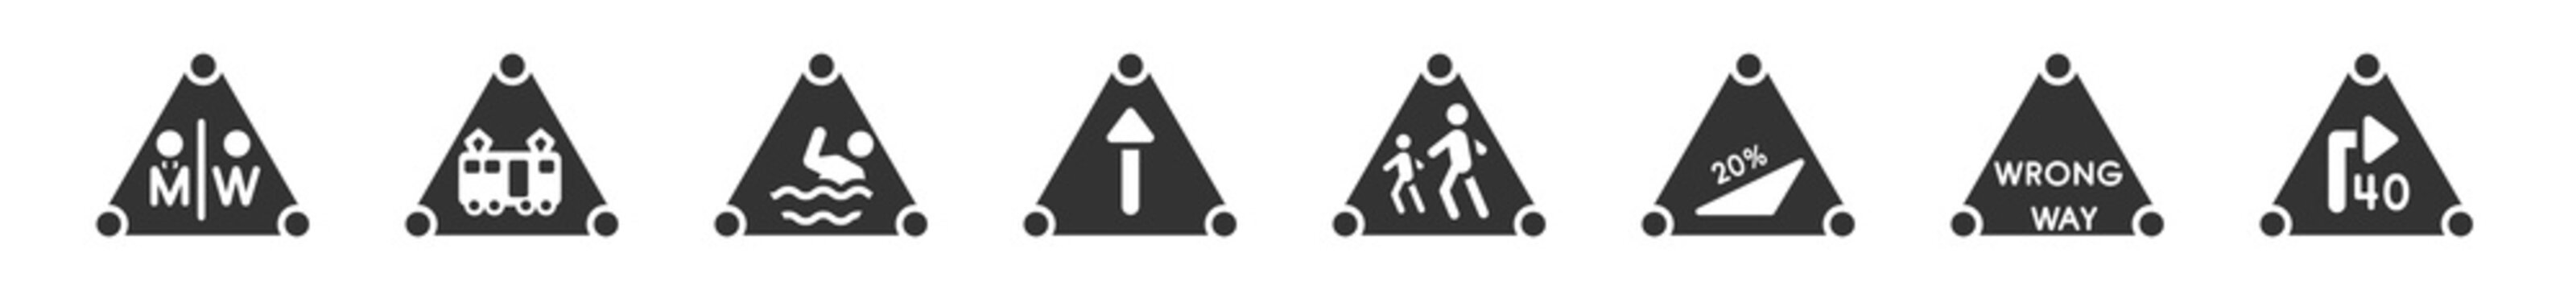 filled set of traffic signs icons. glyph vector icons such as wc, tram, swimming, straight, school ahead, turn with advisory speed. vector illustration.